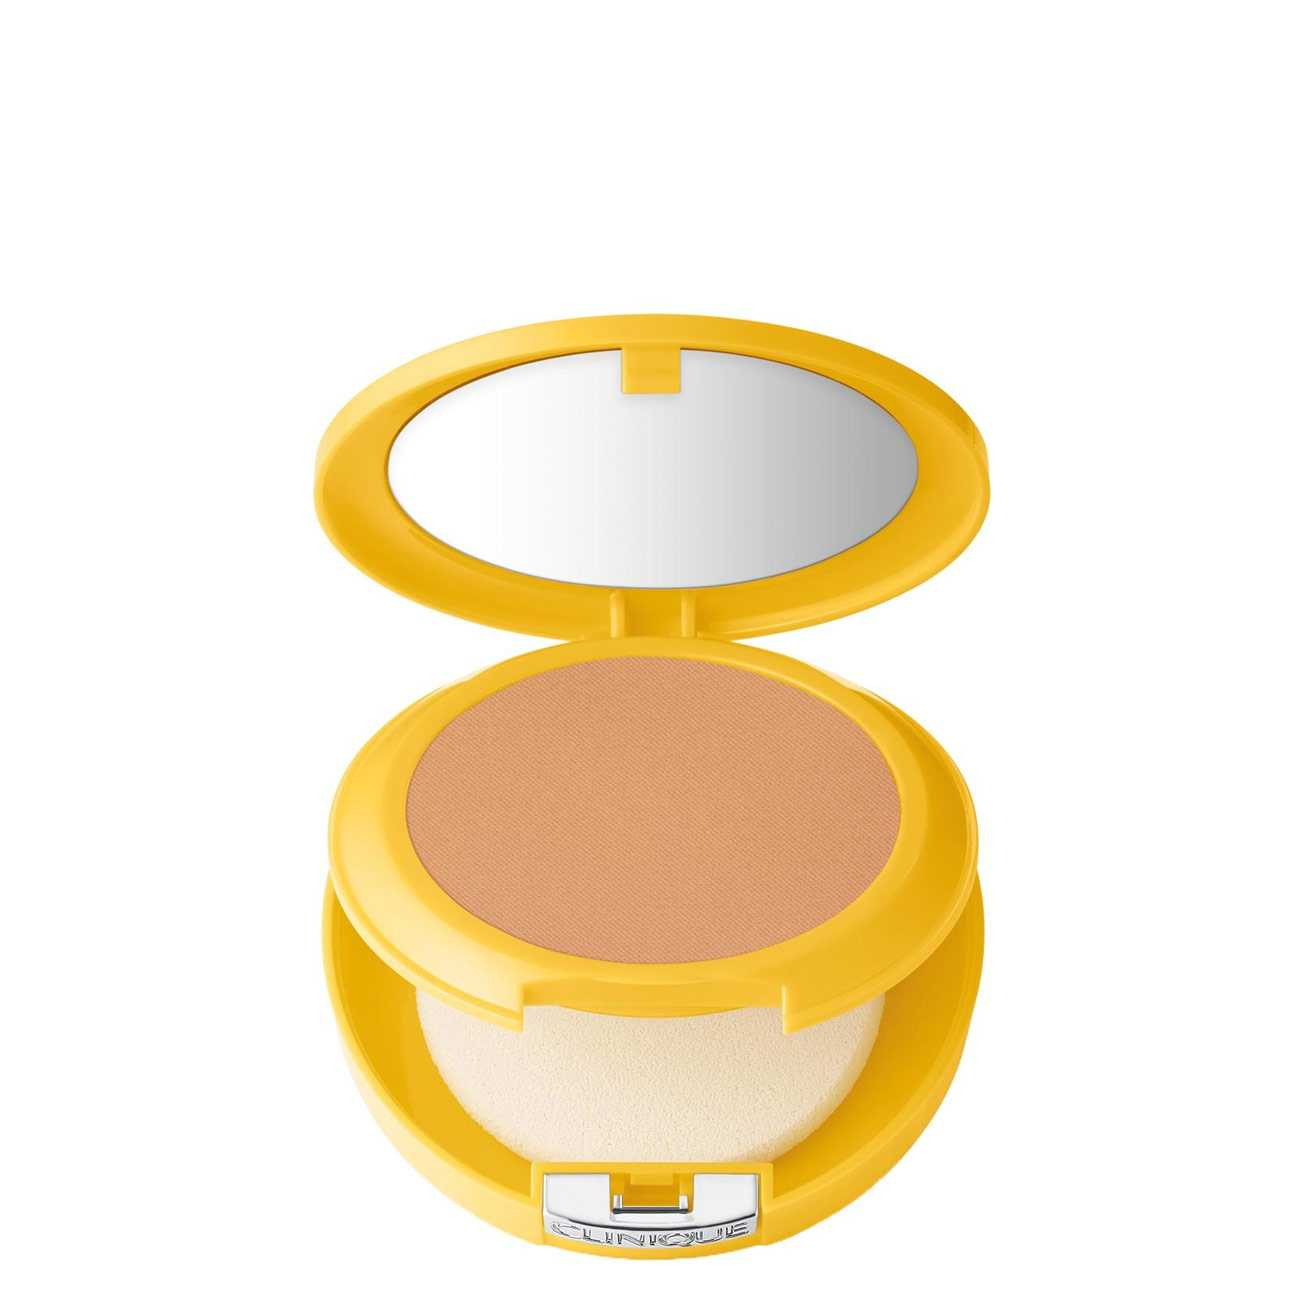 SUN MINERAL POWDER 9.5 G VERY FAIR 1